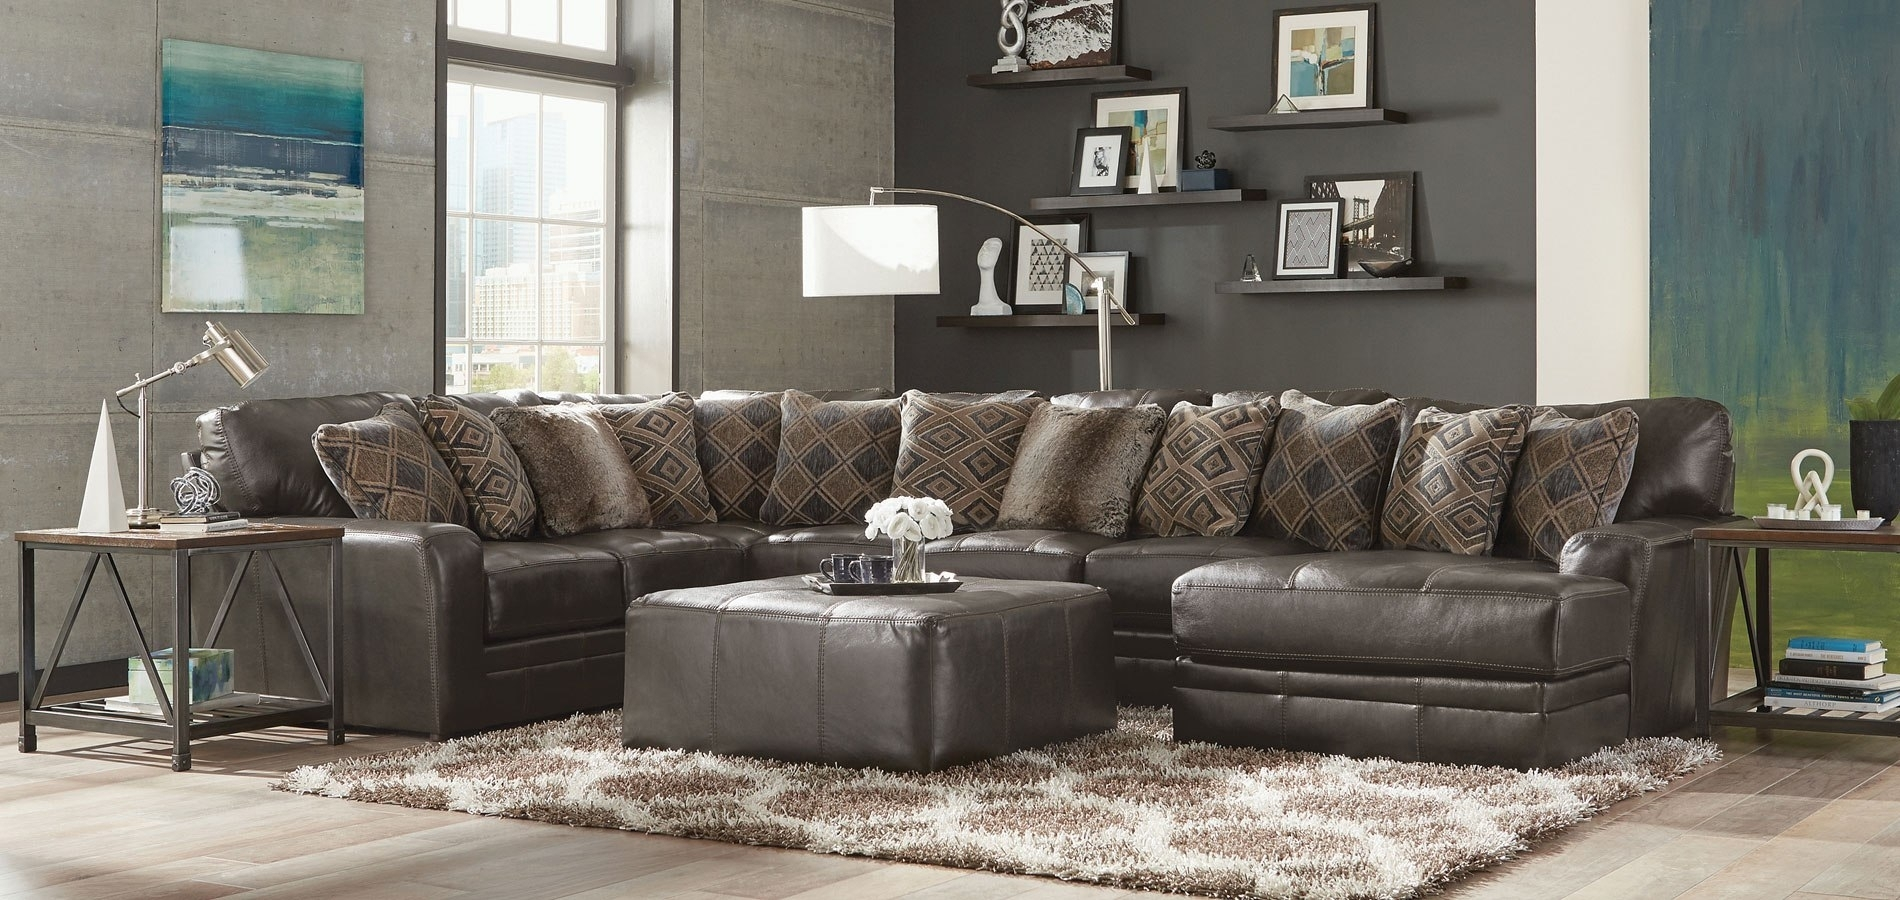 Denali Modular Sectional (Steel) Jackson Furniture | Furniture Cart In Jackson 6 Piece Power Reclining Sectionals (View 16 of 25)